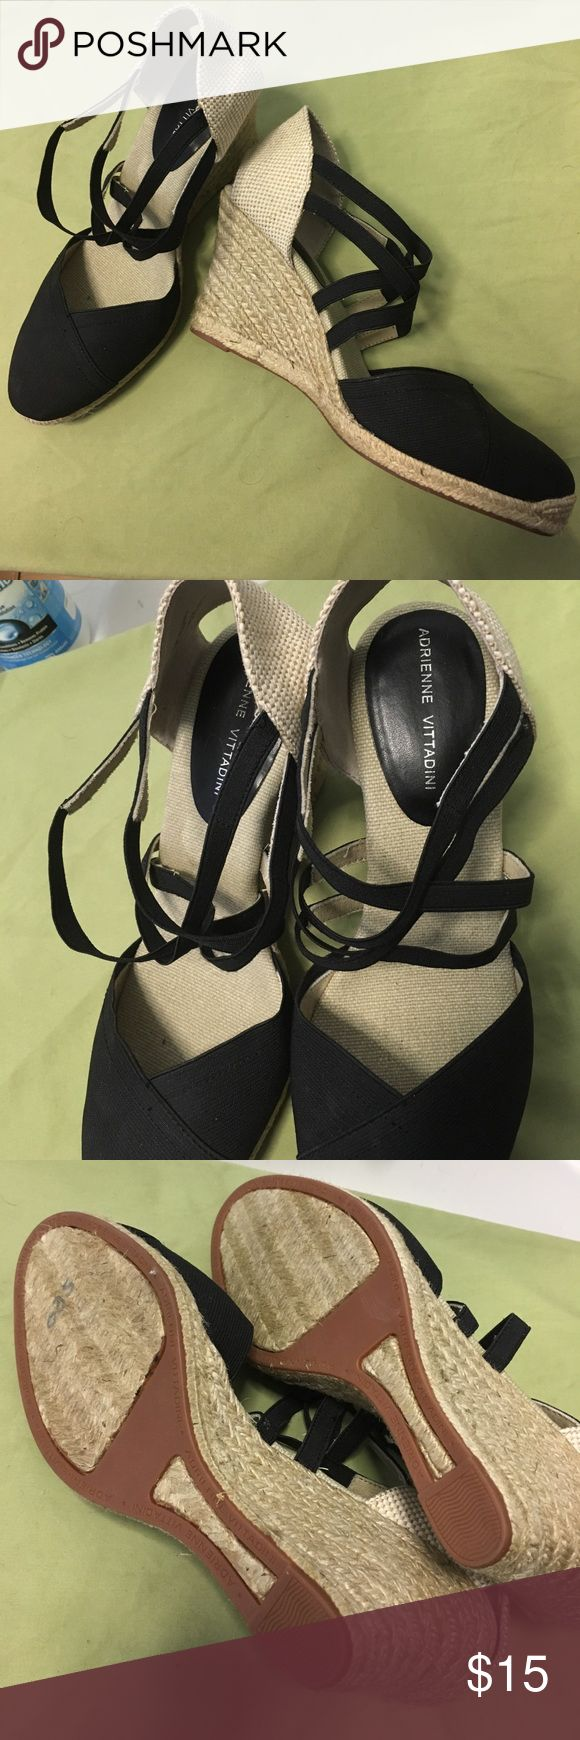 Adrienne Vittadini wedge espadrilles NWT Charming wedges feature a mix of natural and black textiles in a variety of texture. Closed toe means you can feel beachy all year long. New, never worn, without tags. Adrienne Vittadini Shoes Wedges